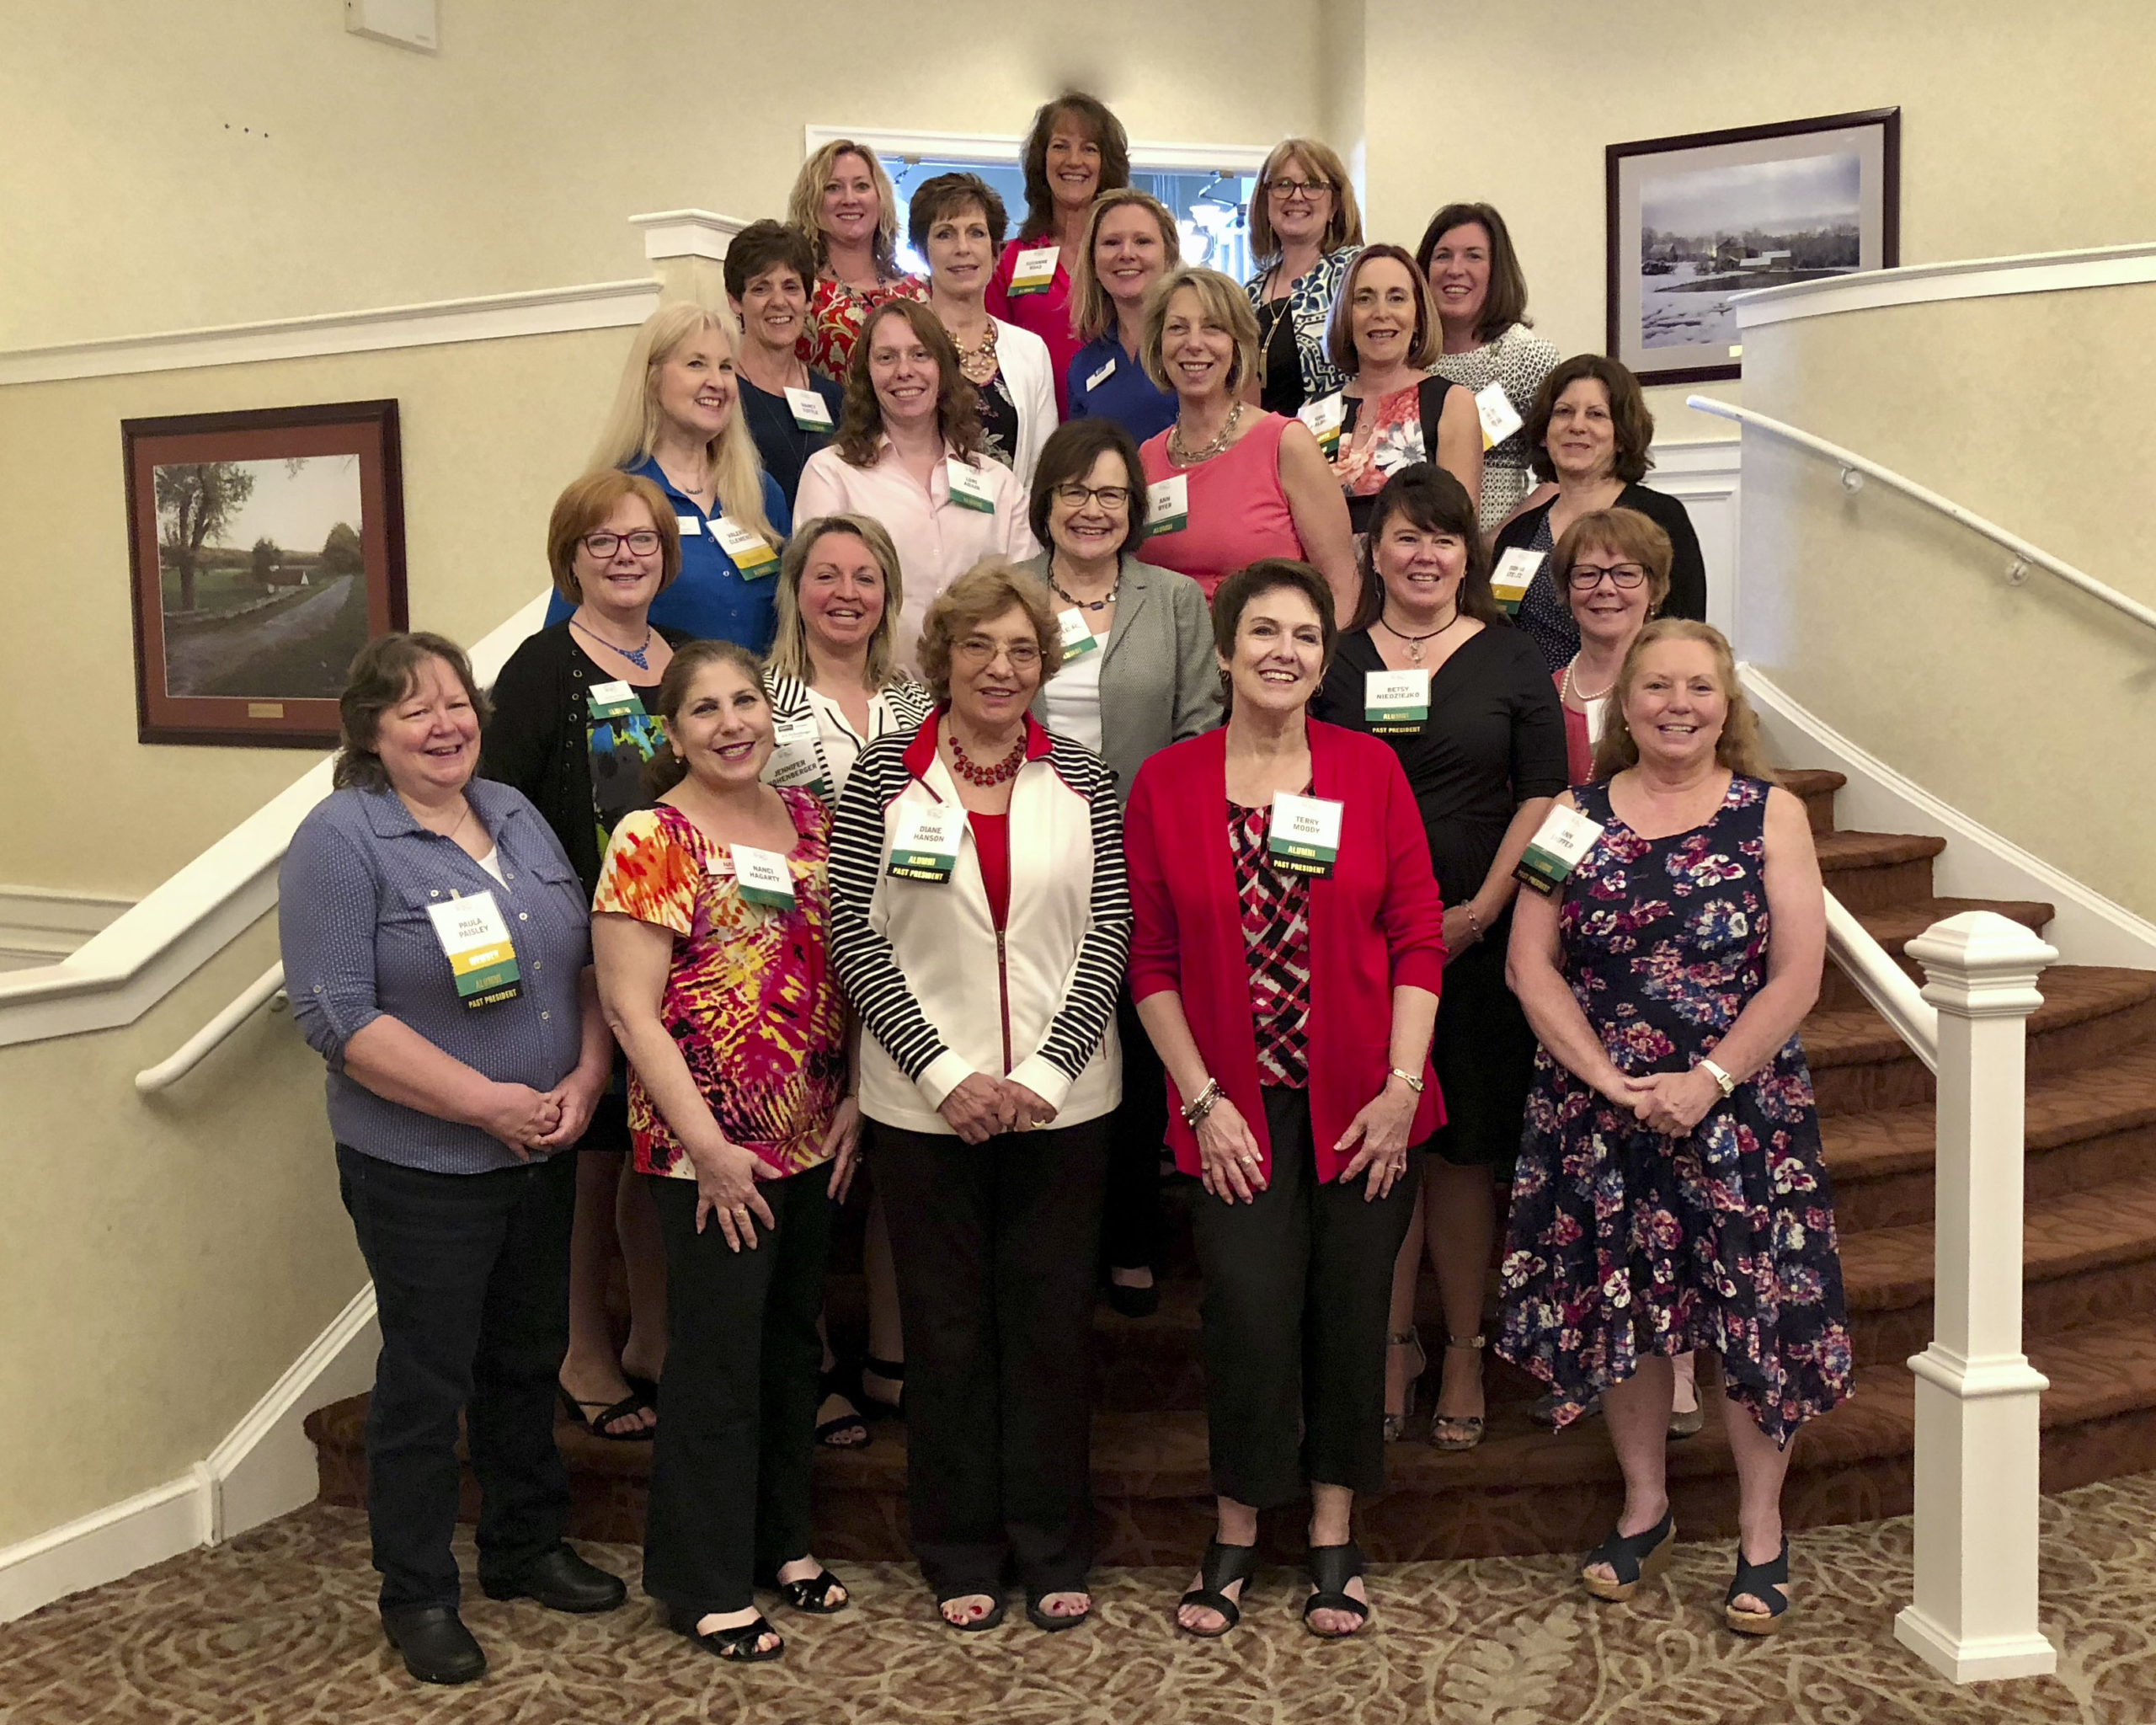 Women's Business Connection Boasts Tradition of Relationship-Building; New Members Sought